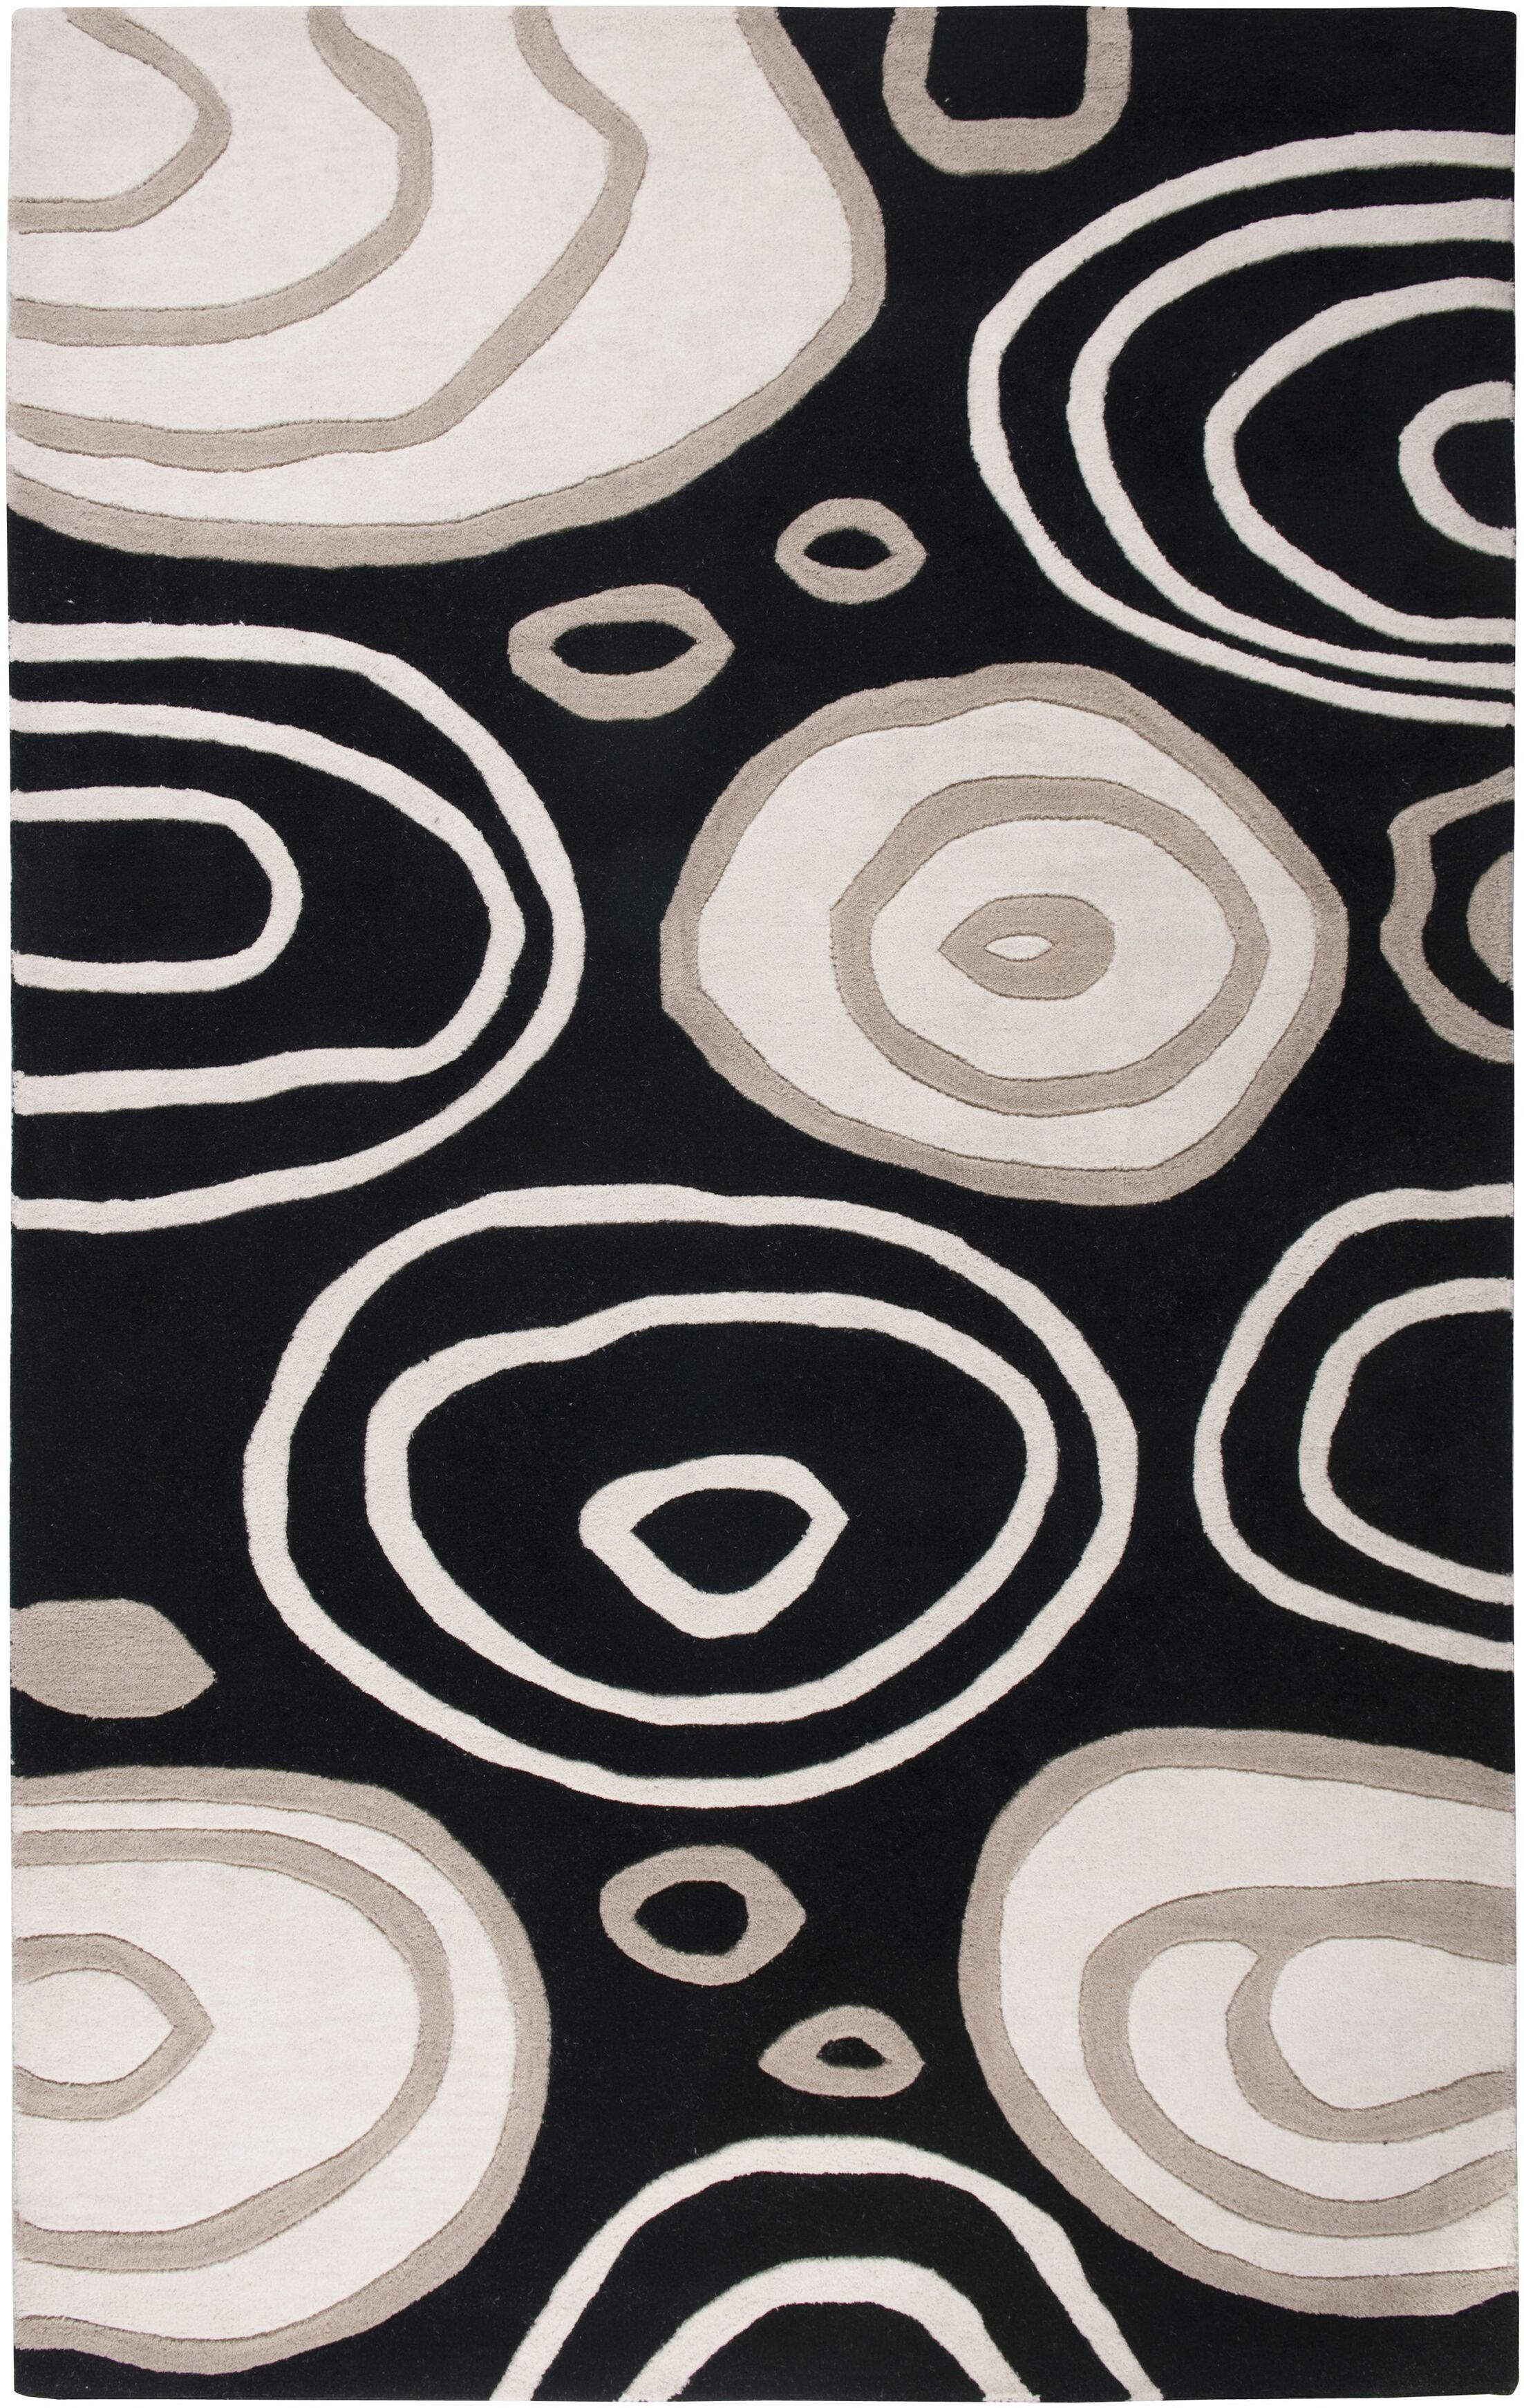 Iskenderun Hand-Tufted Black/White Area Rug Rug Size: Rectangle 5' x 8'